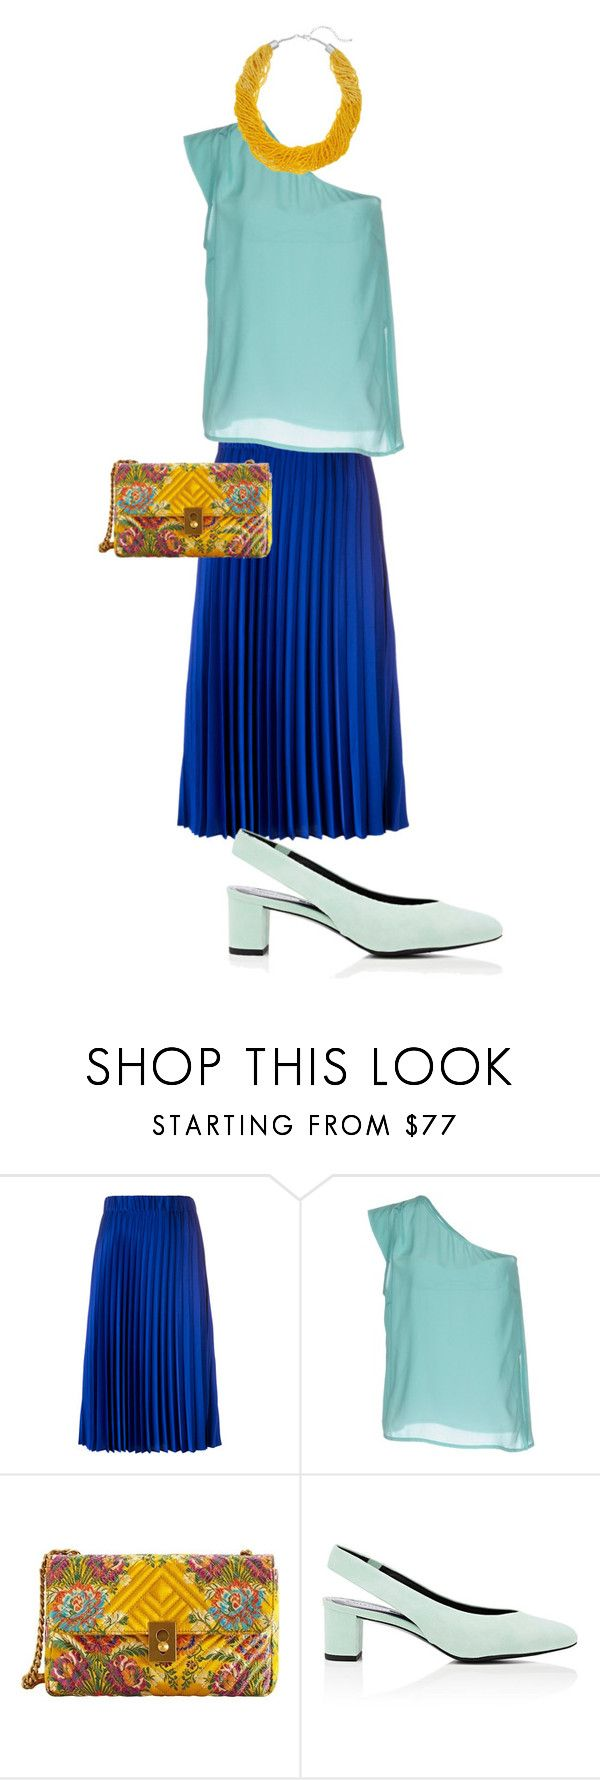 """""""цвет2"""" by sdelanodoma on Polyvore featuring P.A.R.O.S.H., Suoli, MANGO and Stella Luna"""